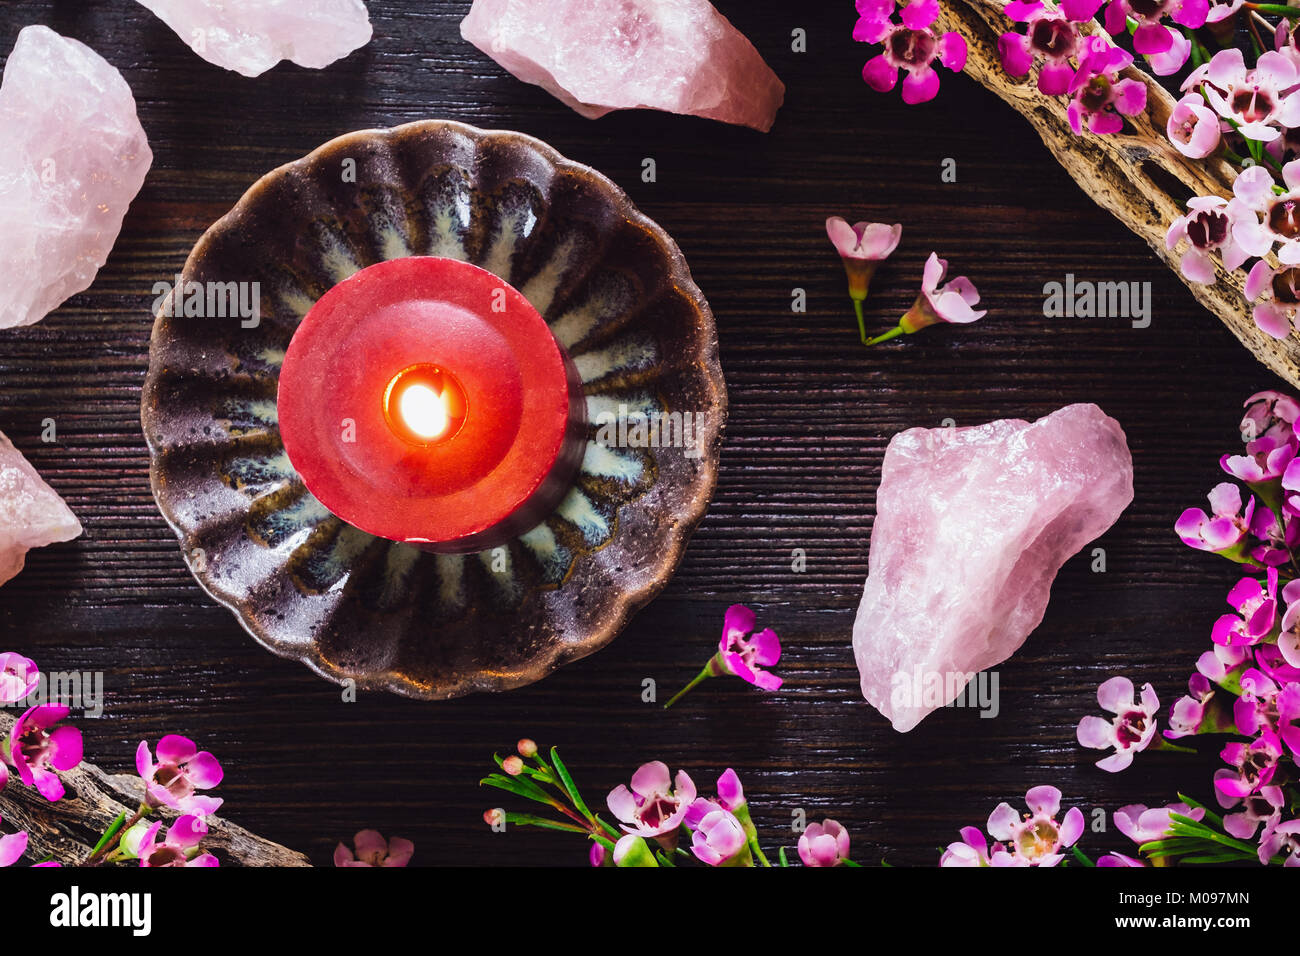 Red Candle and Rose Quartz with Flowers on Dark Table - Stock Image